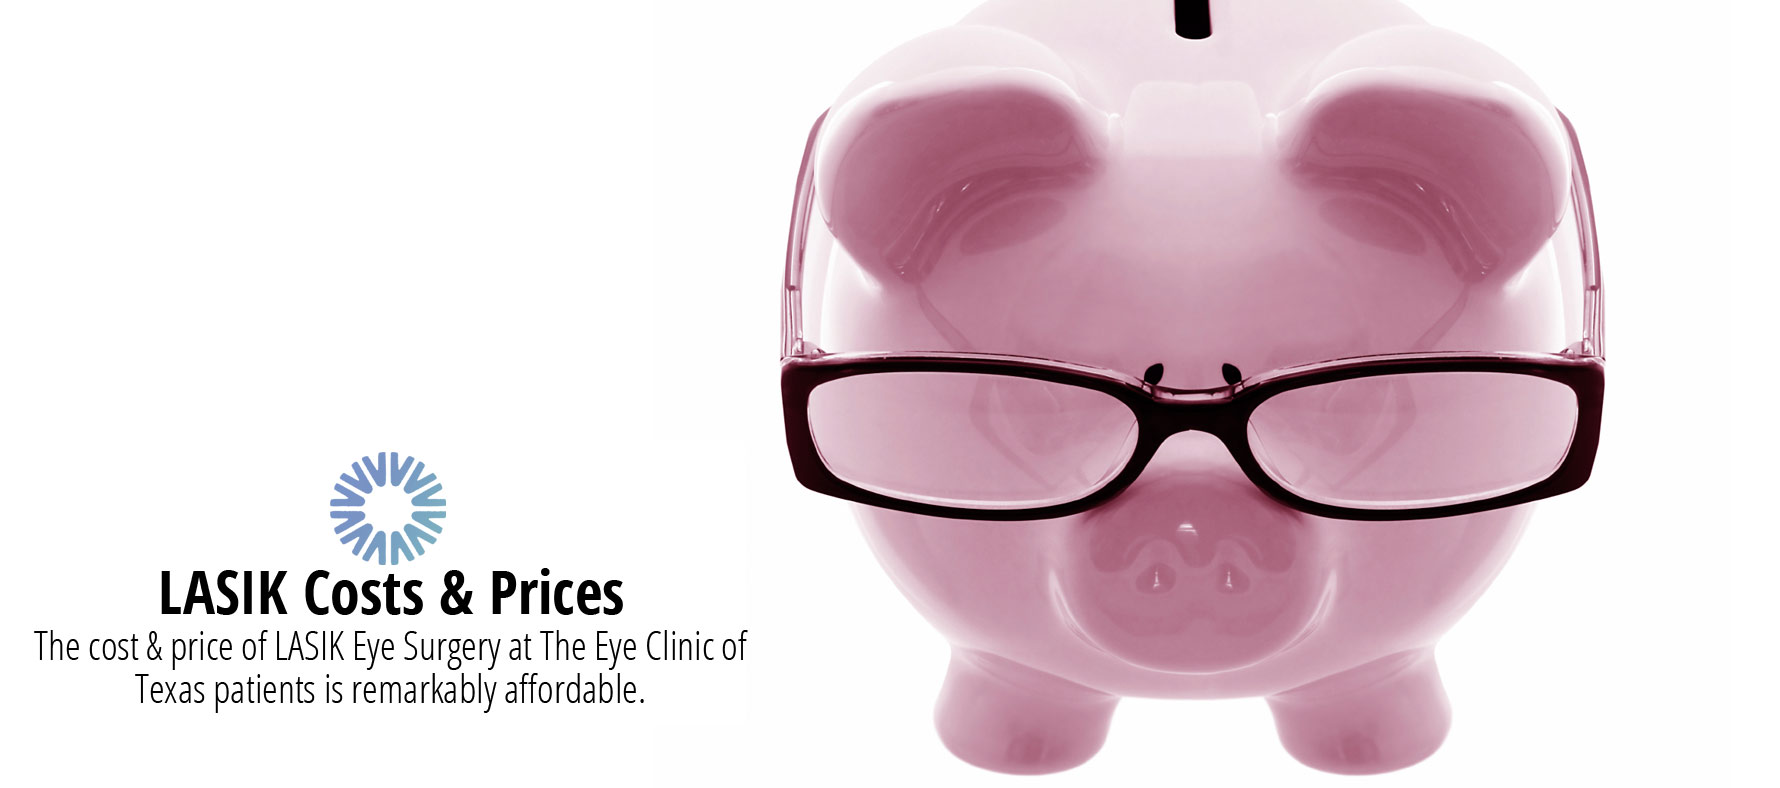 LASIK Cots & Prices Header Image